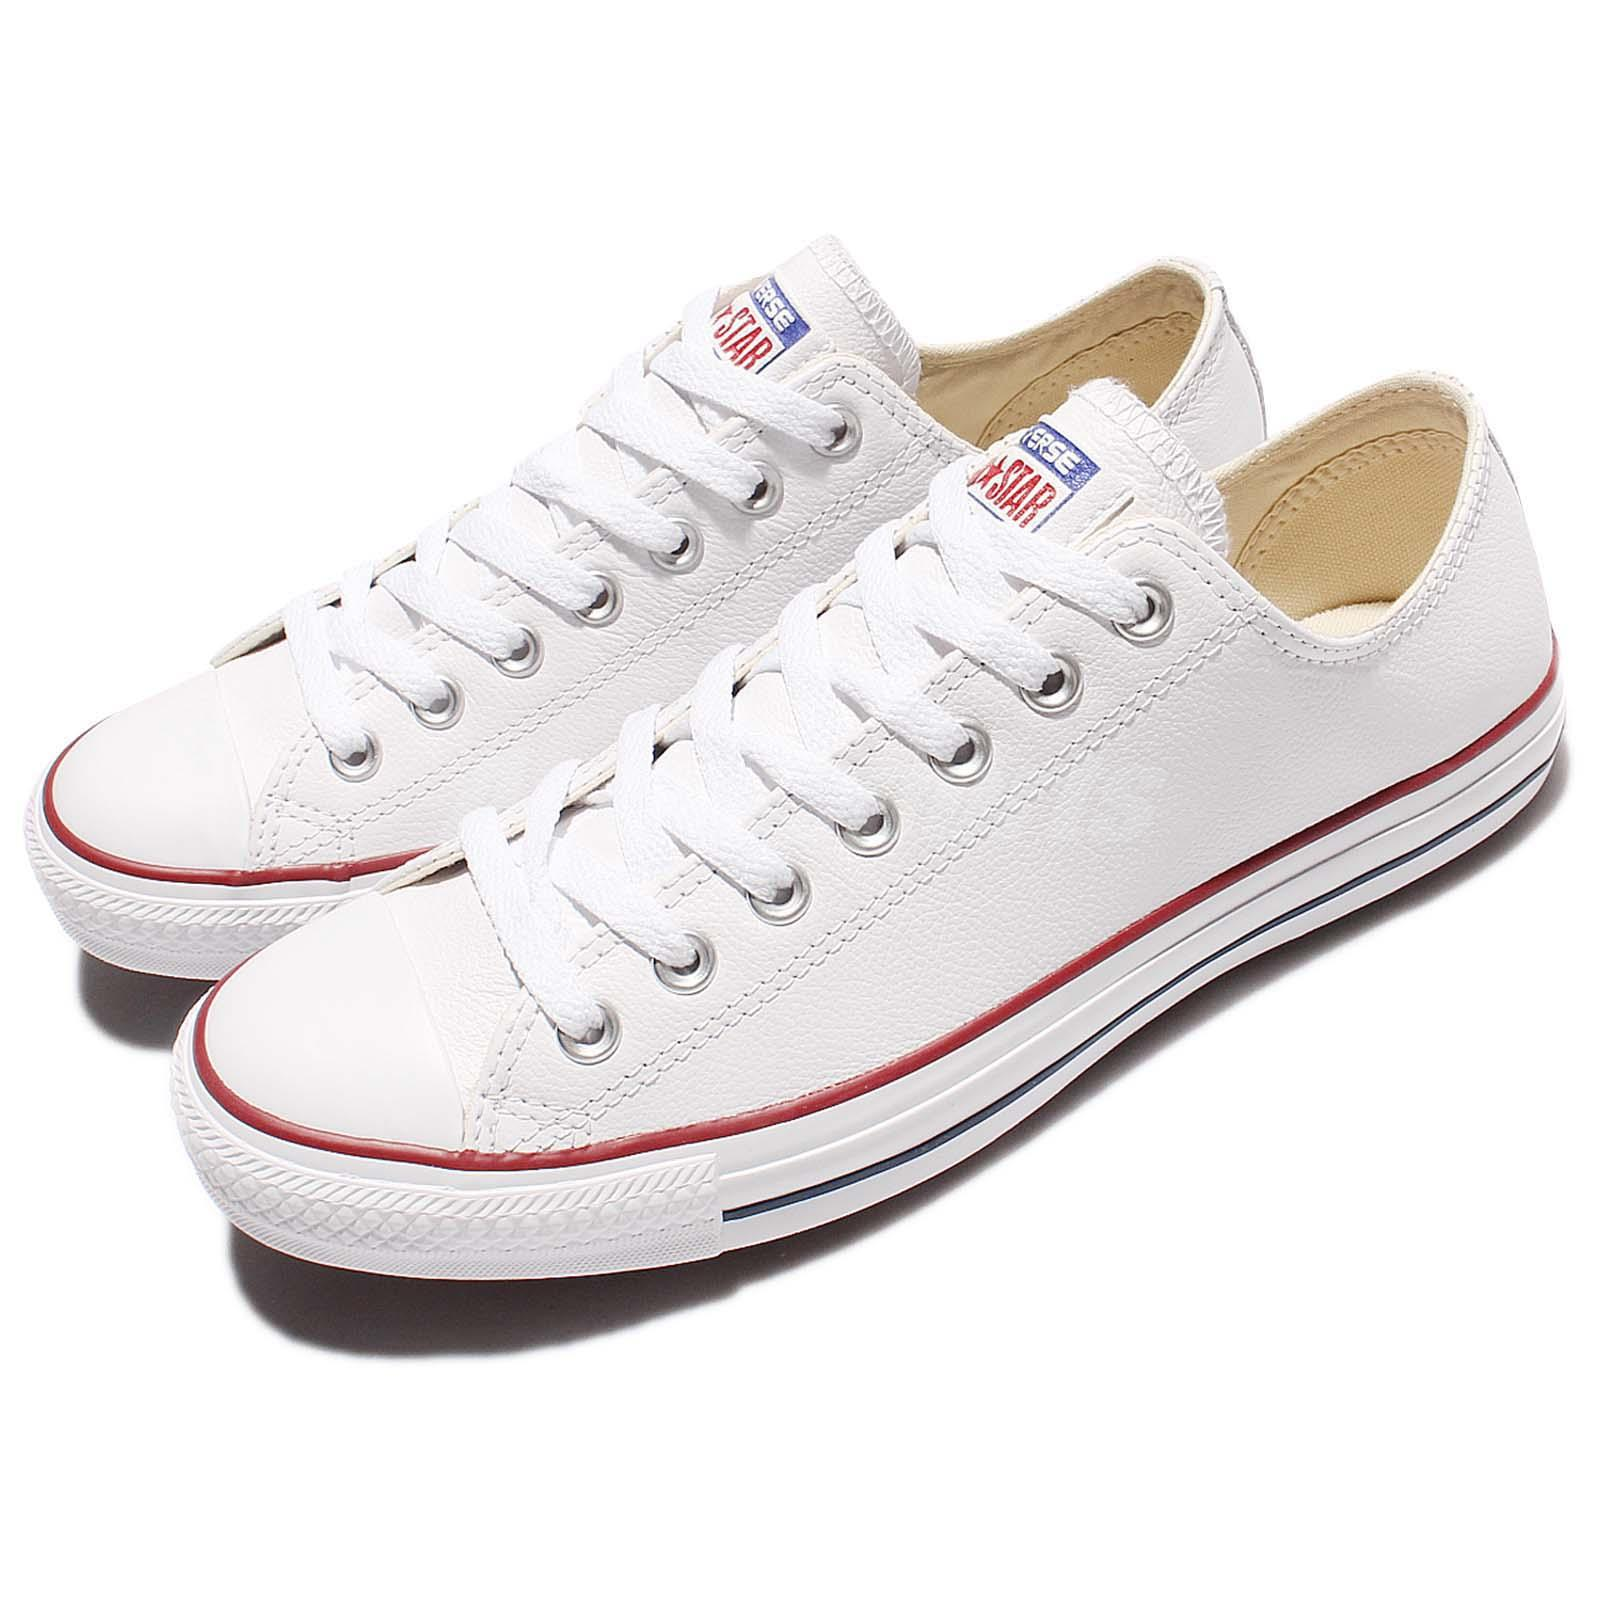 386c3335795a Details about Converse Chuck Taylor All Star OX Leather White Men Women Shoes  Sneakers 132173C